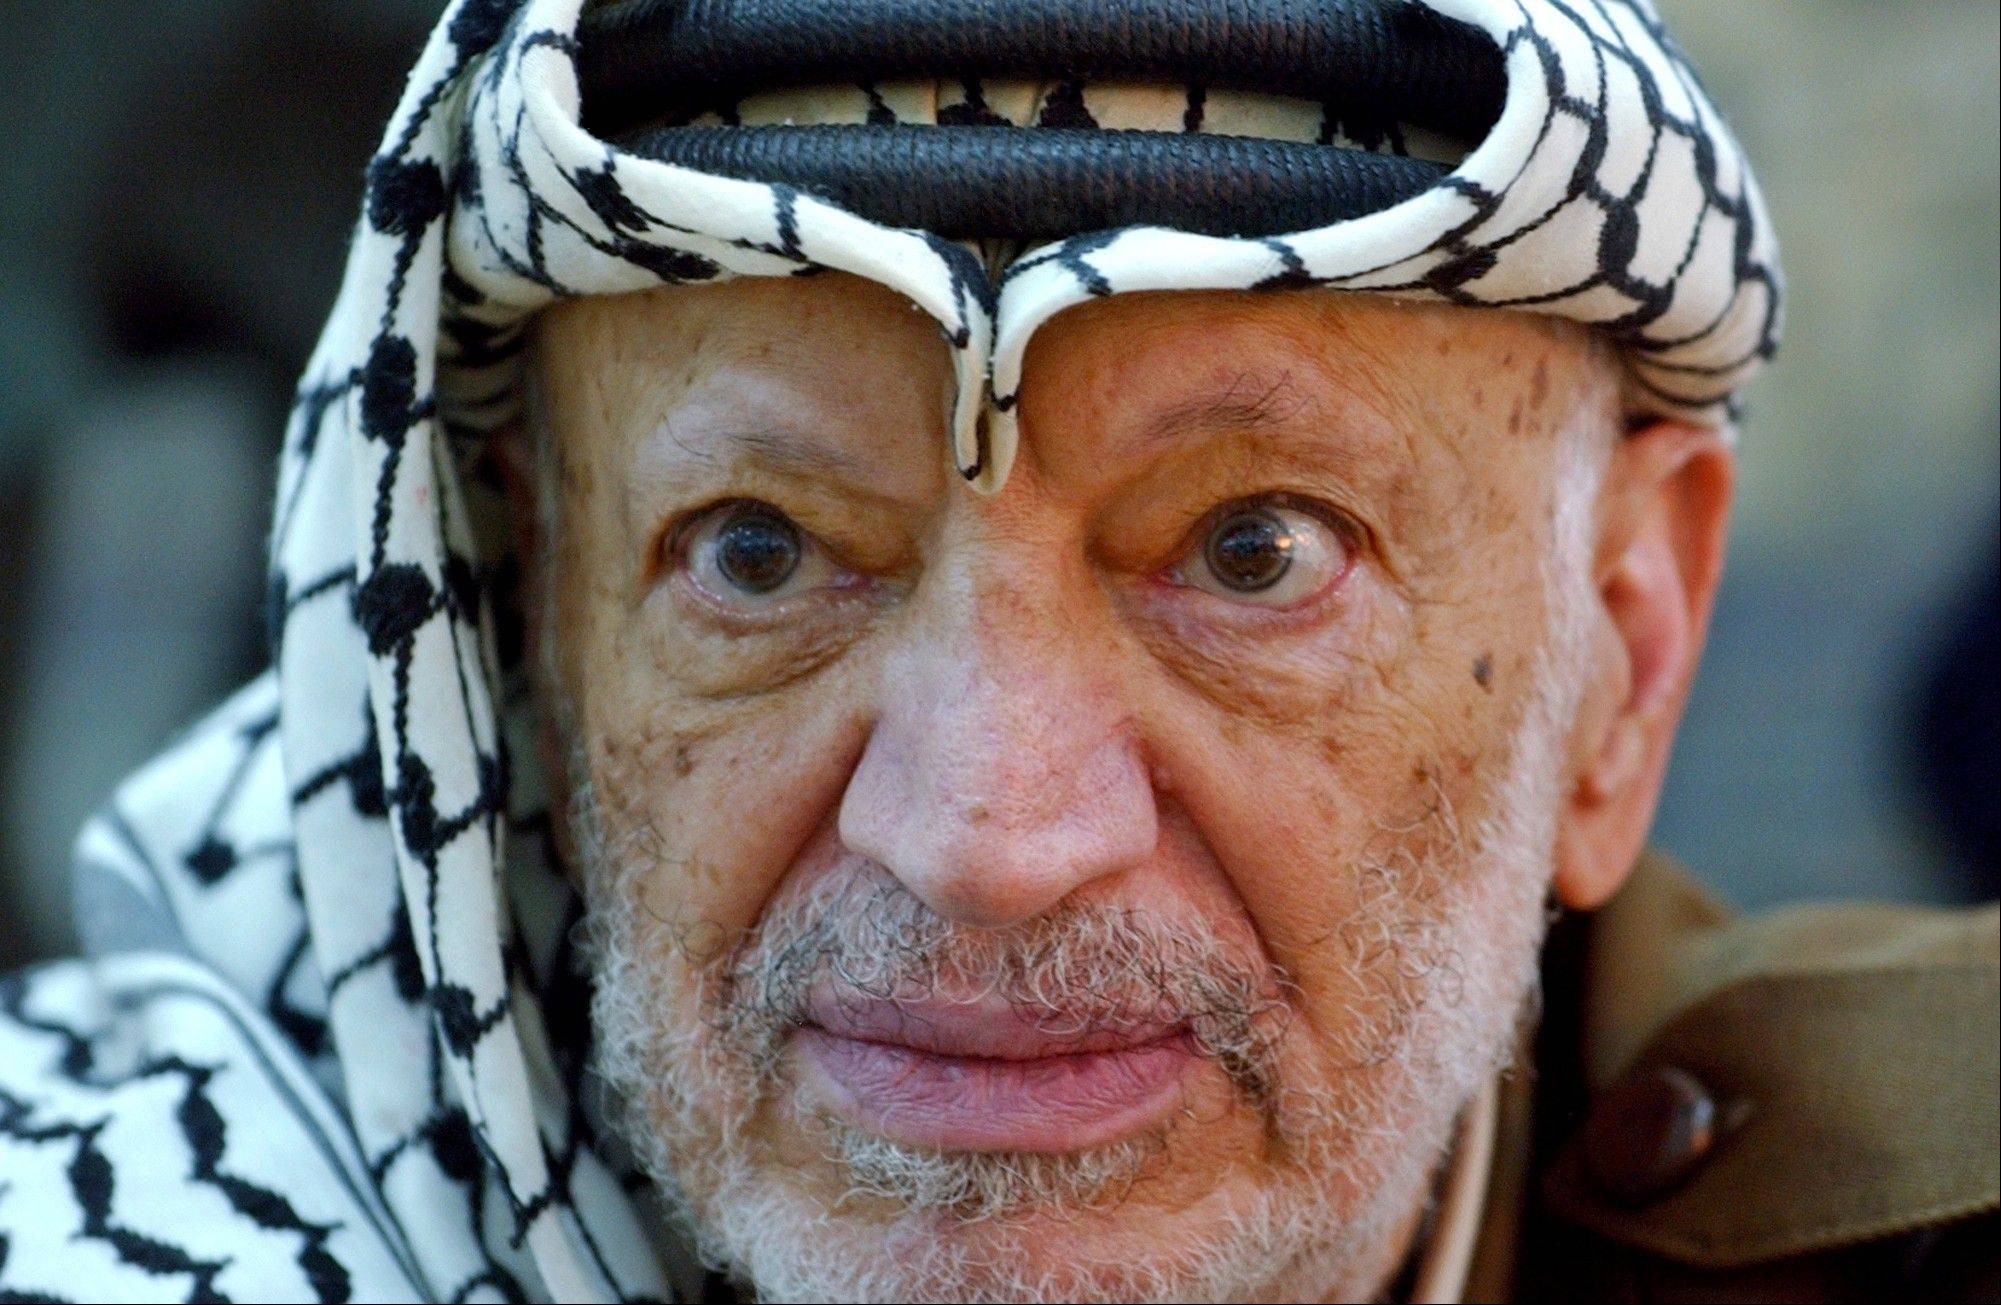 Yasser Arafat's political heirs on Tuesday opened his grave and foreign experts took samples of the iconic Palestinian leader's remains as part of a long-shot attempt -- eight years after his mysterious death -- to determine whether he was poisoned.